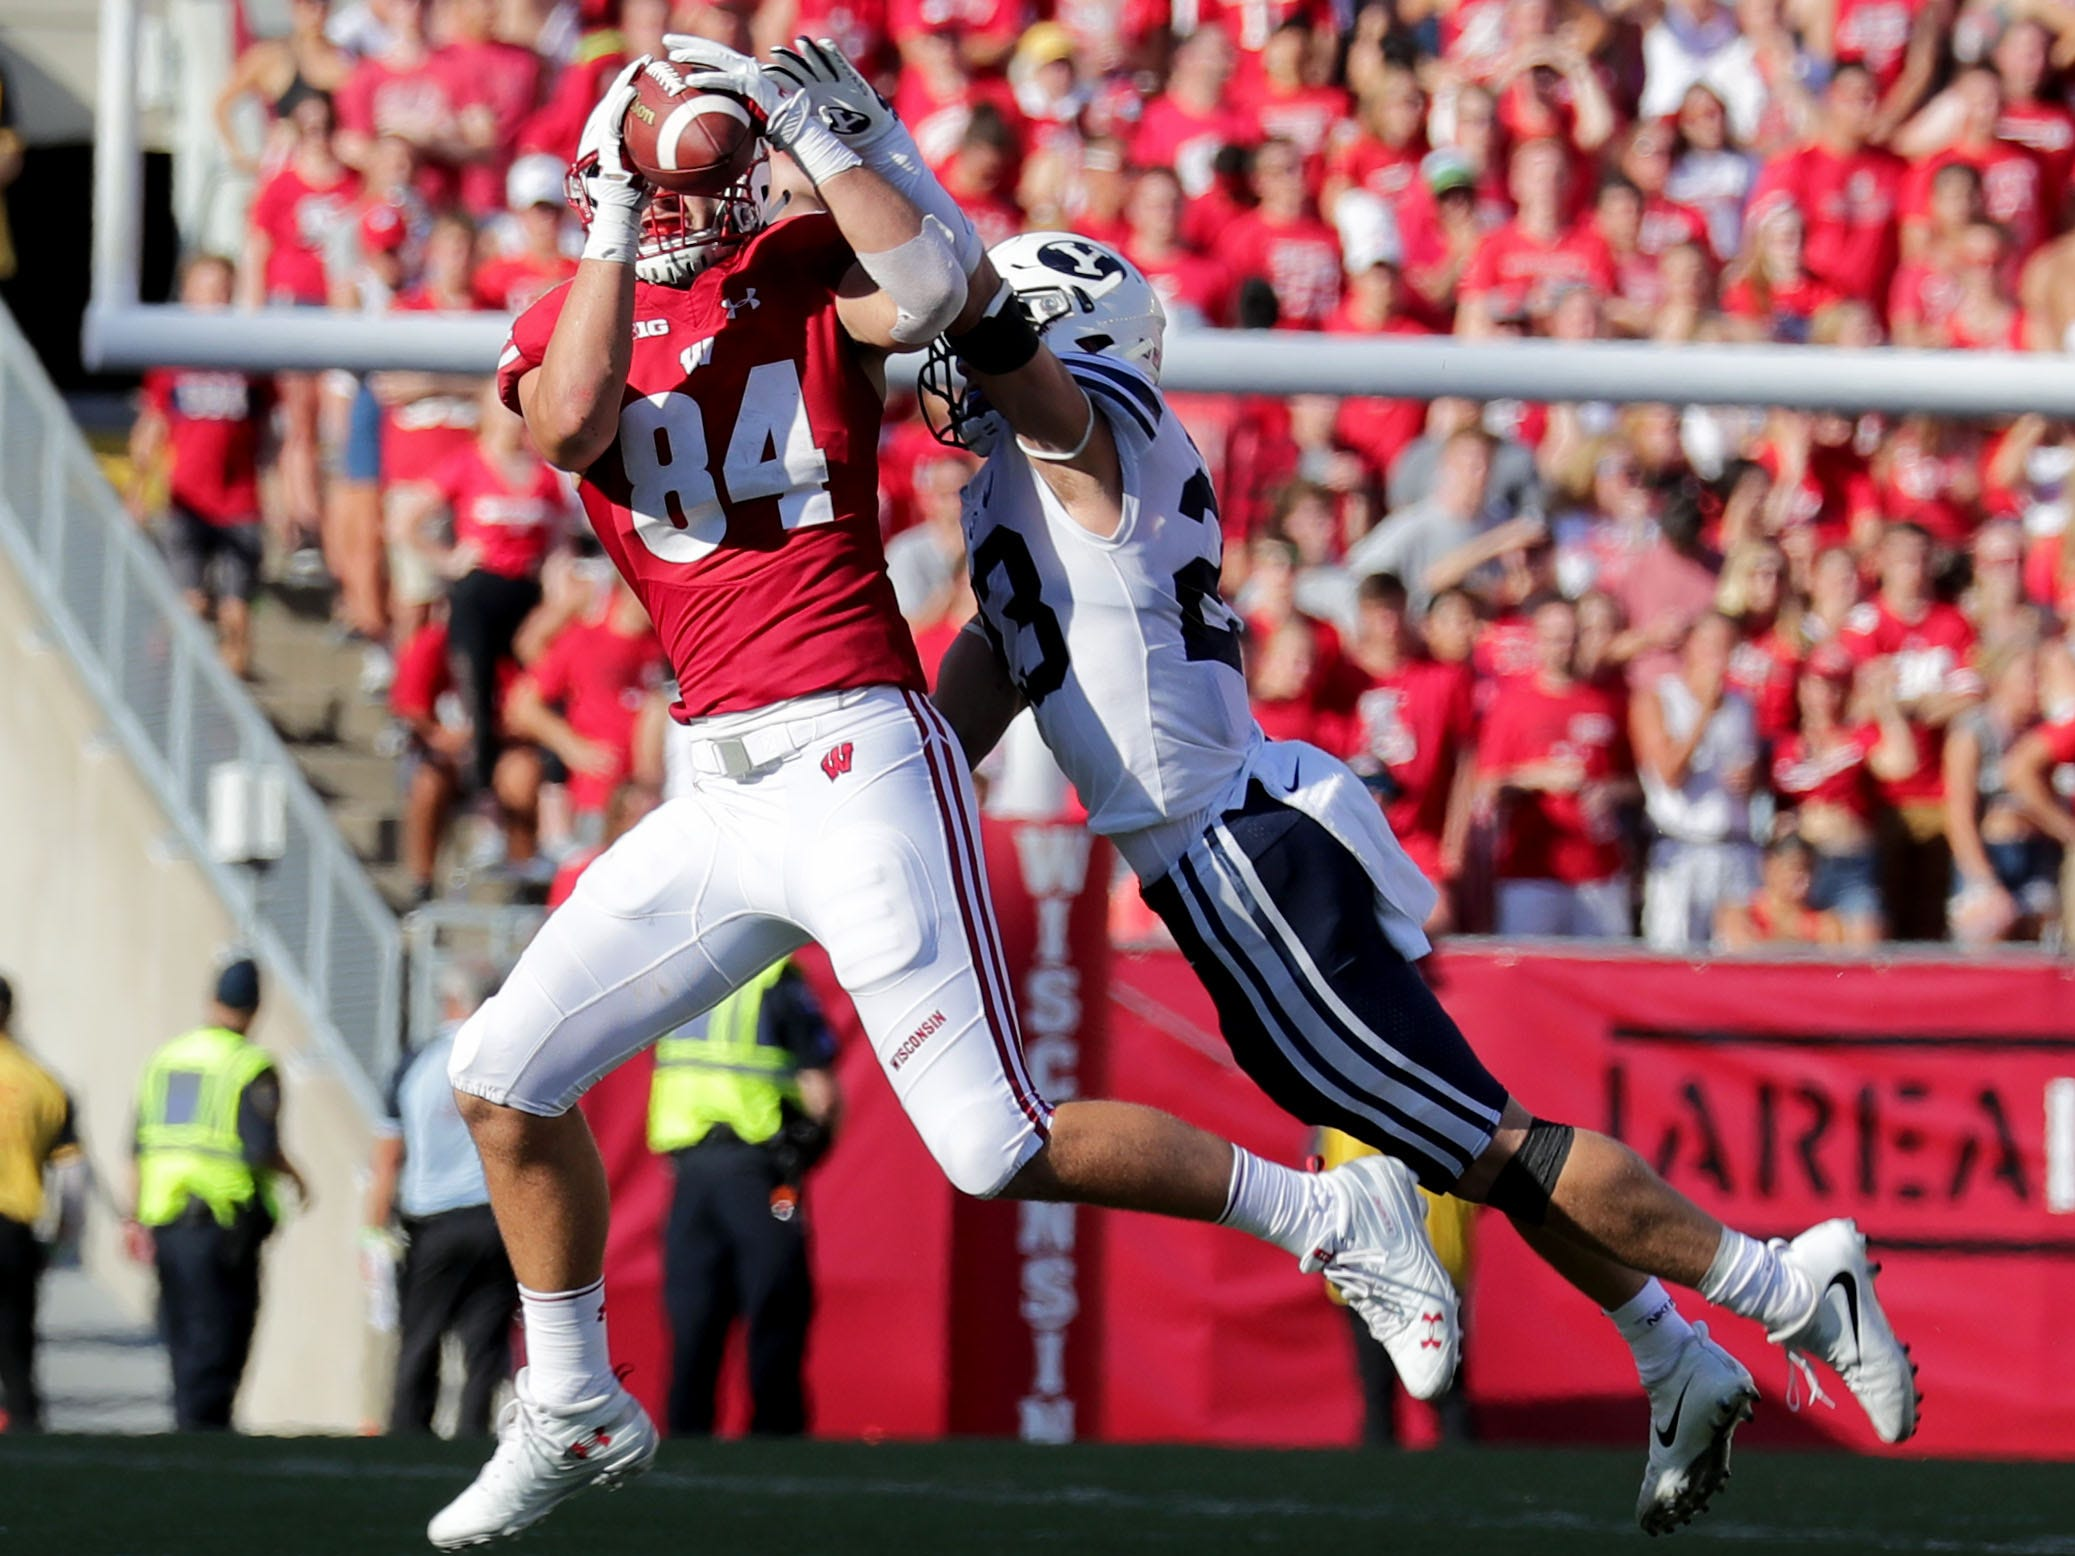 Wisconsin Badgers tight end Jake Ferguson catches a pass while defended by Brigham Young linebacker Zayne Anderson.